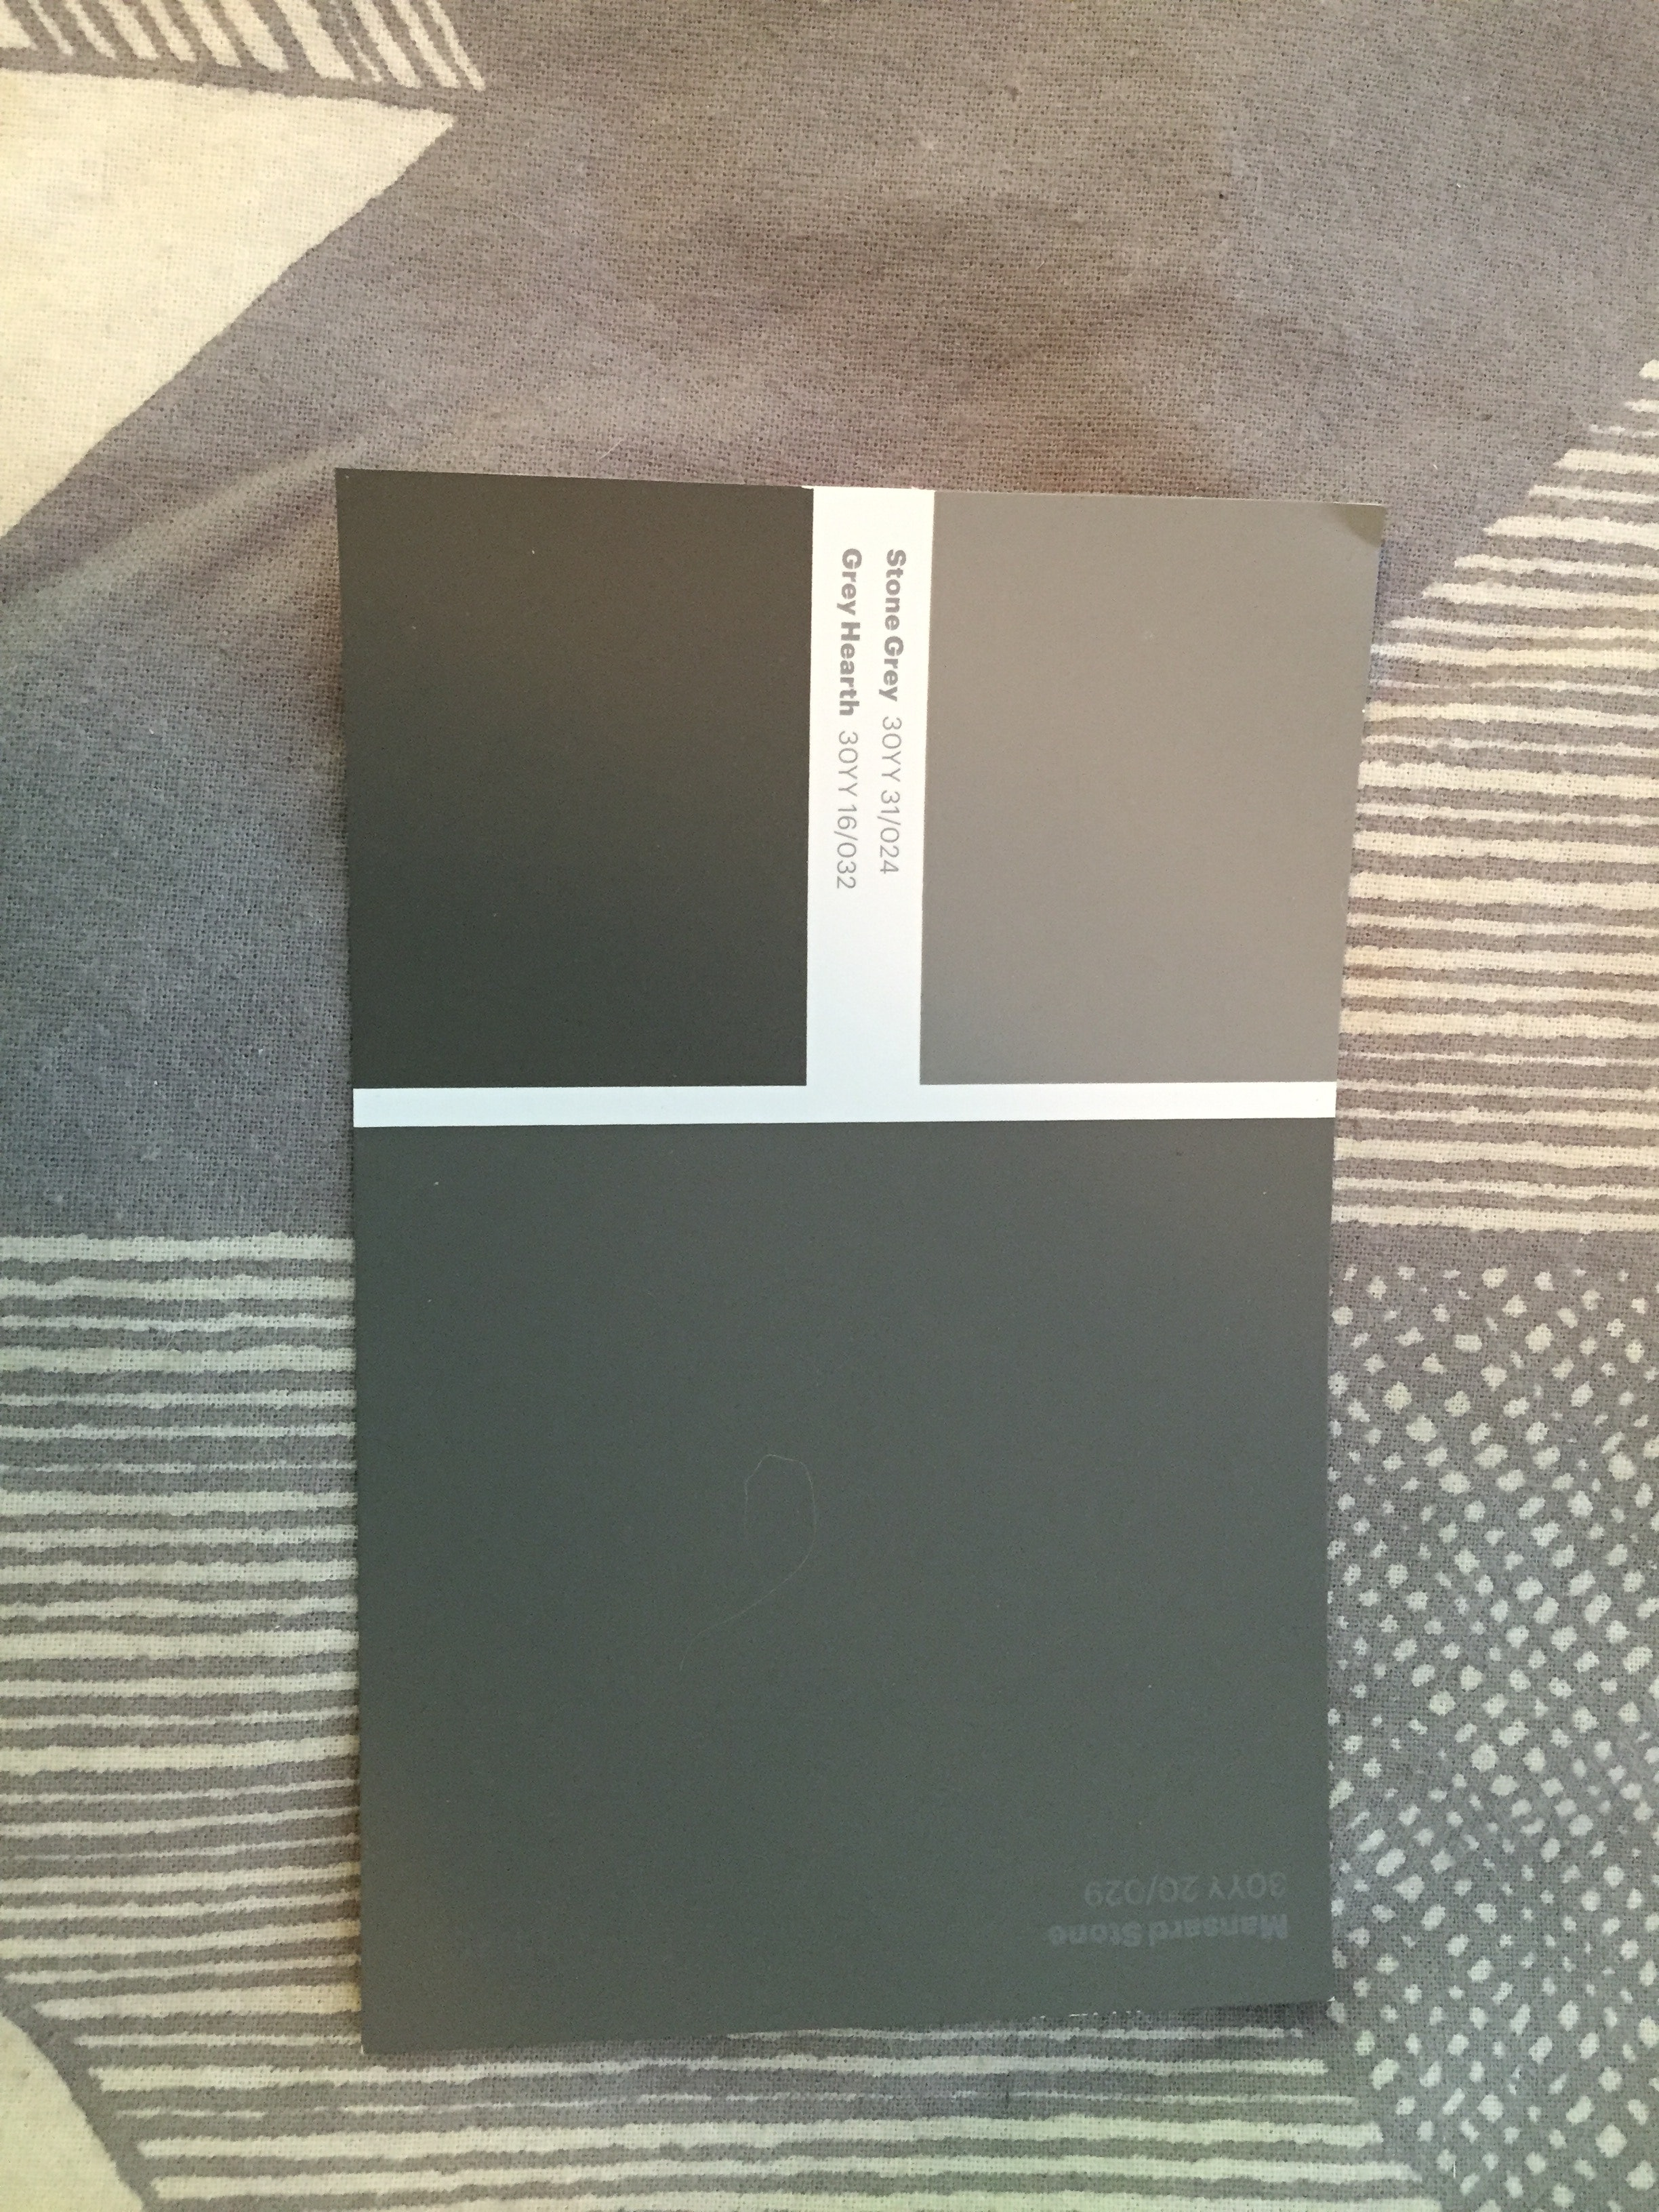 Fifty Shades Of Grey Review From Dark Pewter To Wet Cement Every Shade In Between Photos